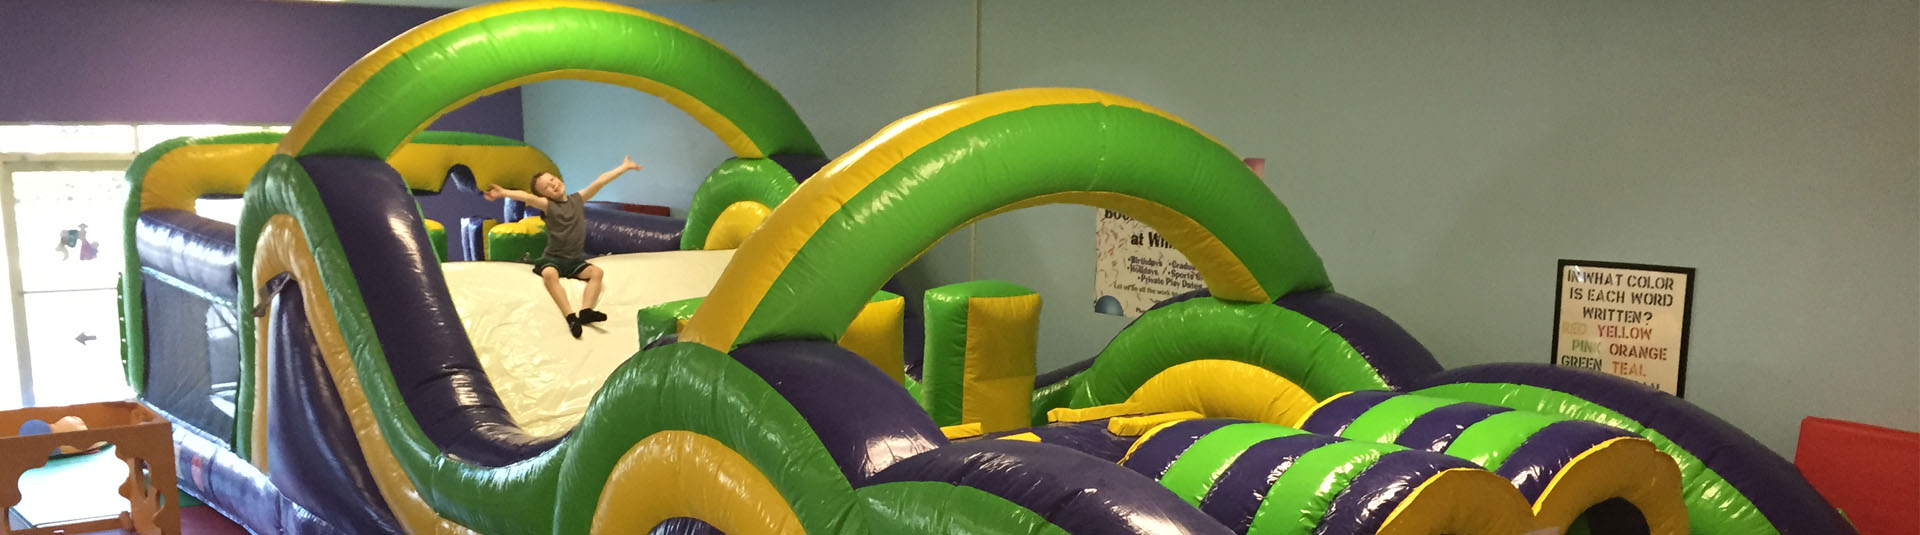 obstacle course   Whiz Kids Play Zone & Party Place - Naples, Florida